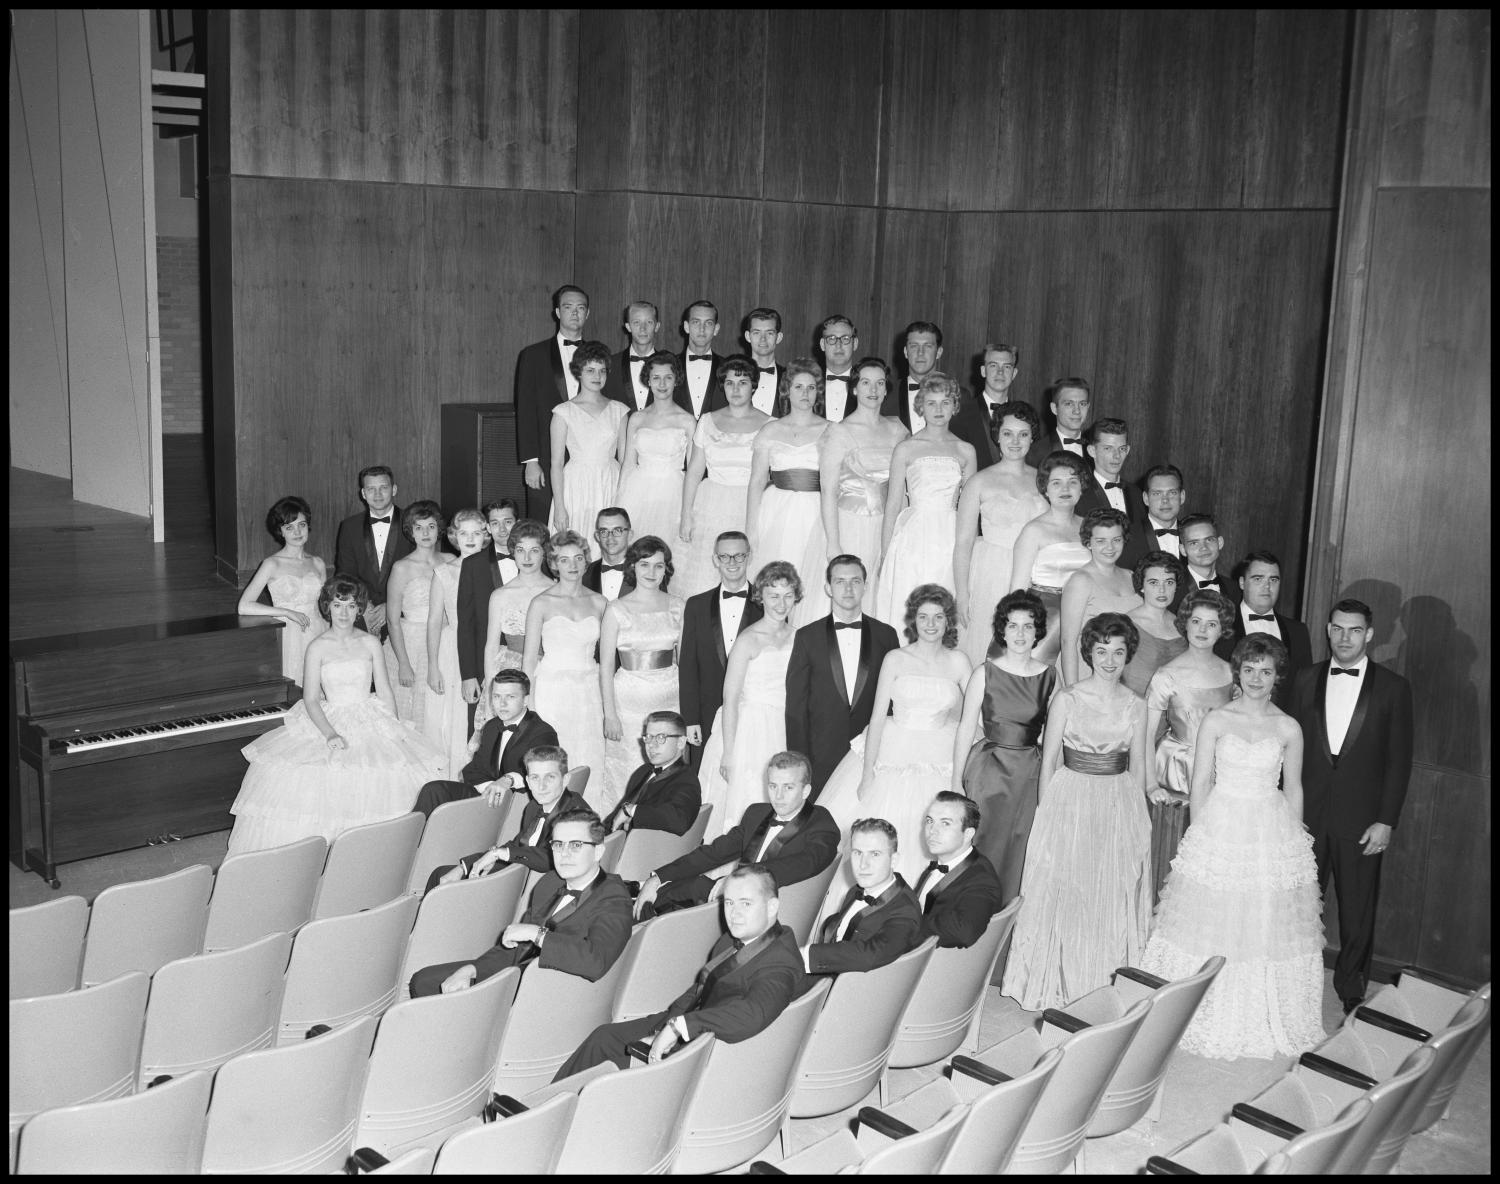 [A Capella Choir Posing for a Photograph in the Corner of the Auditorium, December 4, 1961 #1]                                                                                                      [Sequence #]: 1 of 1